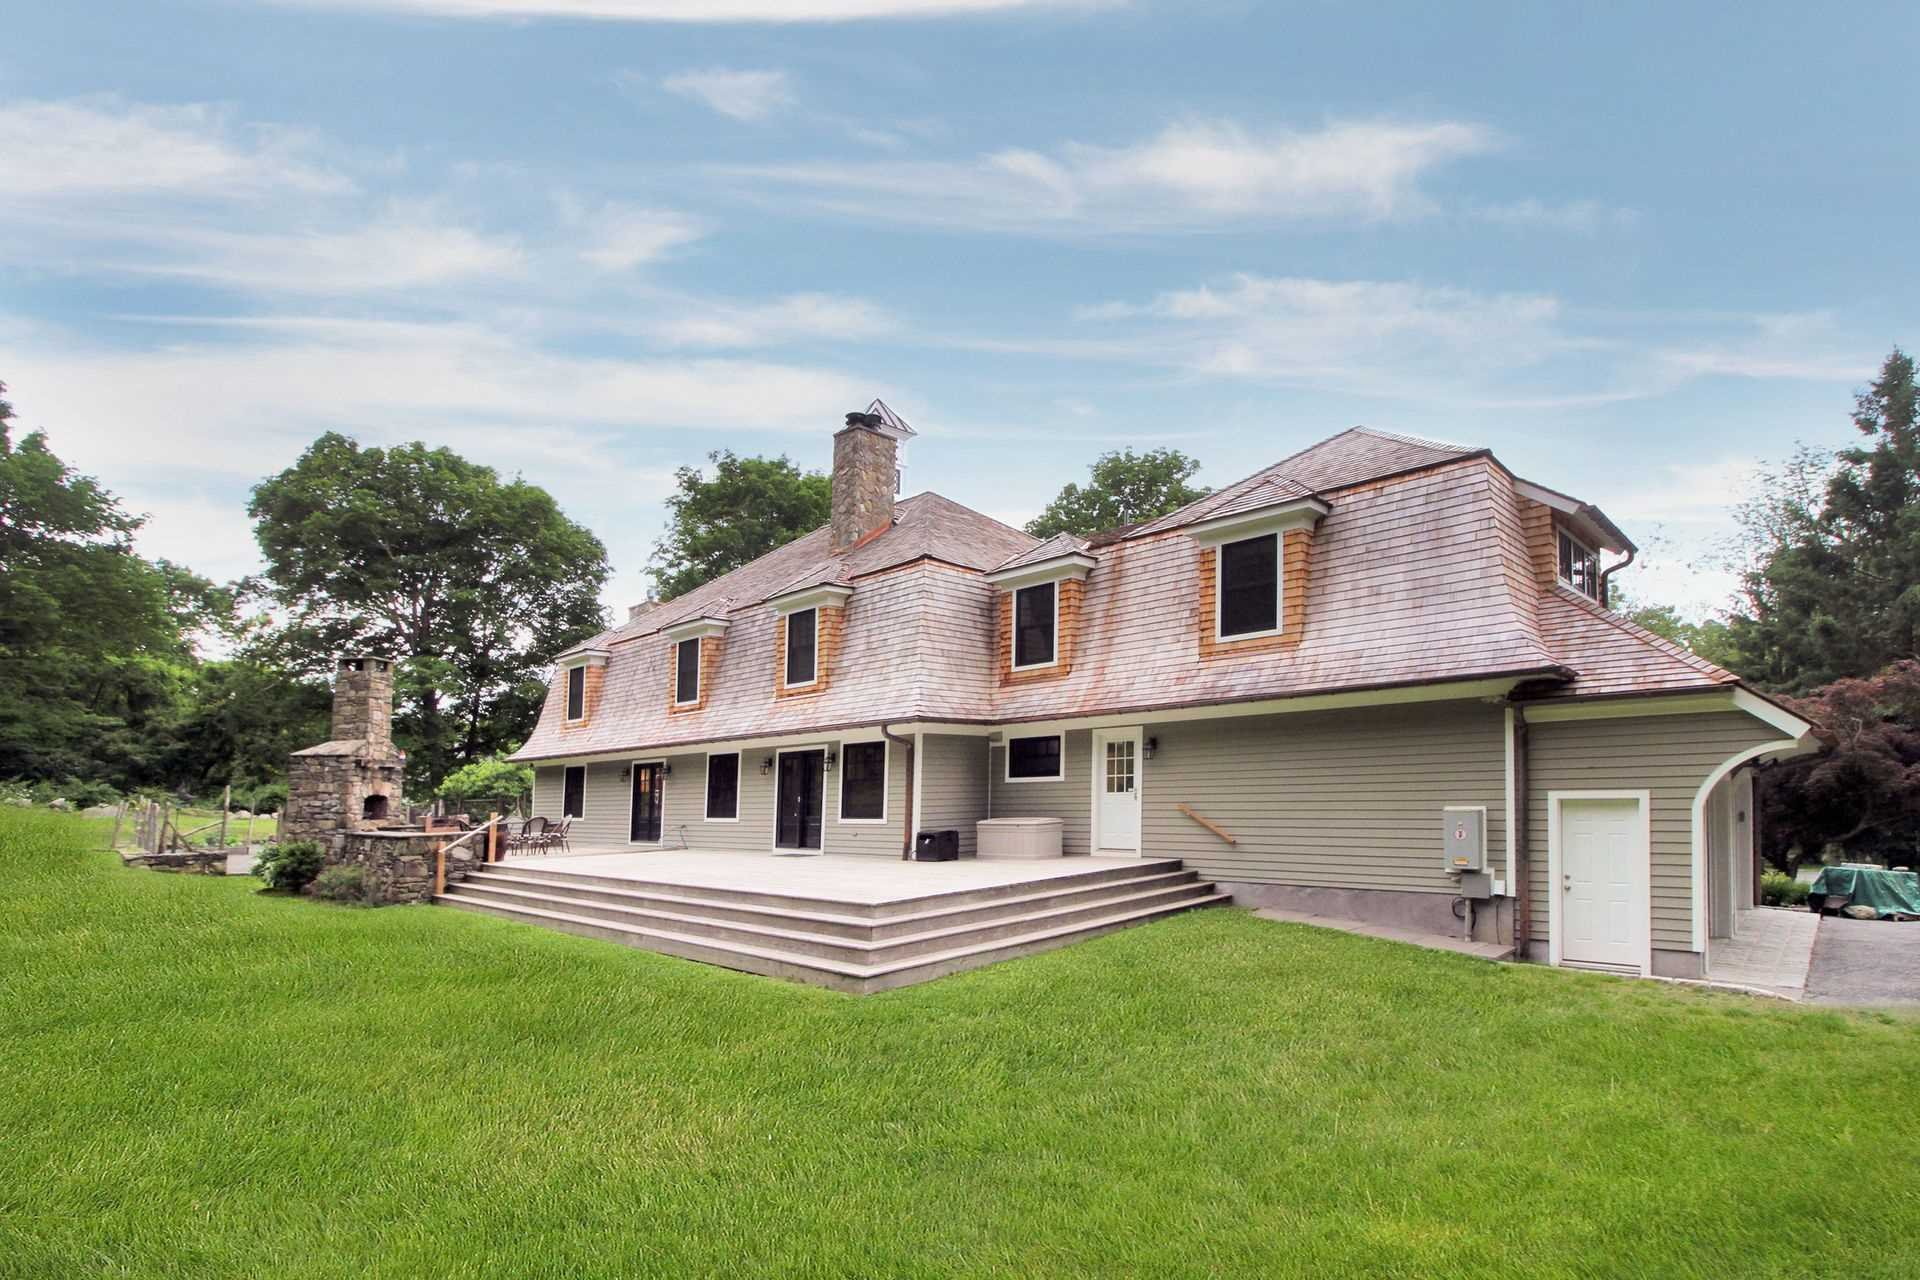 109 CLIFFIELD RD Bedford, NY 10506 - MLS #: 372445